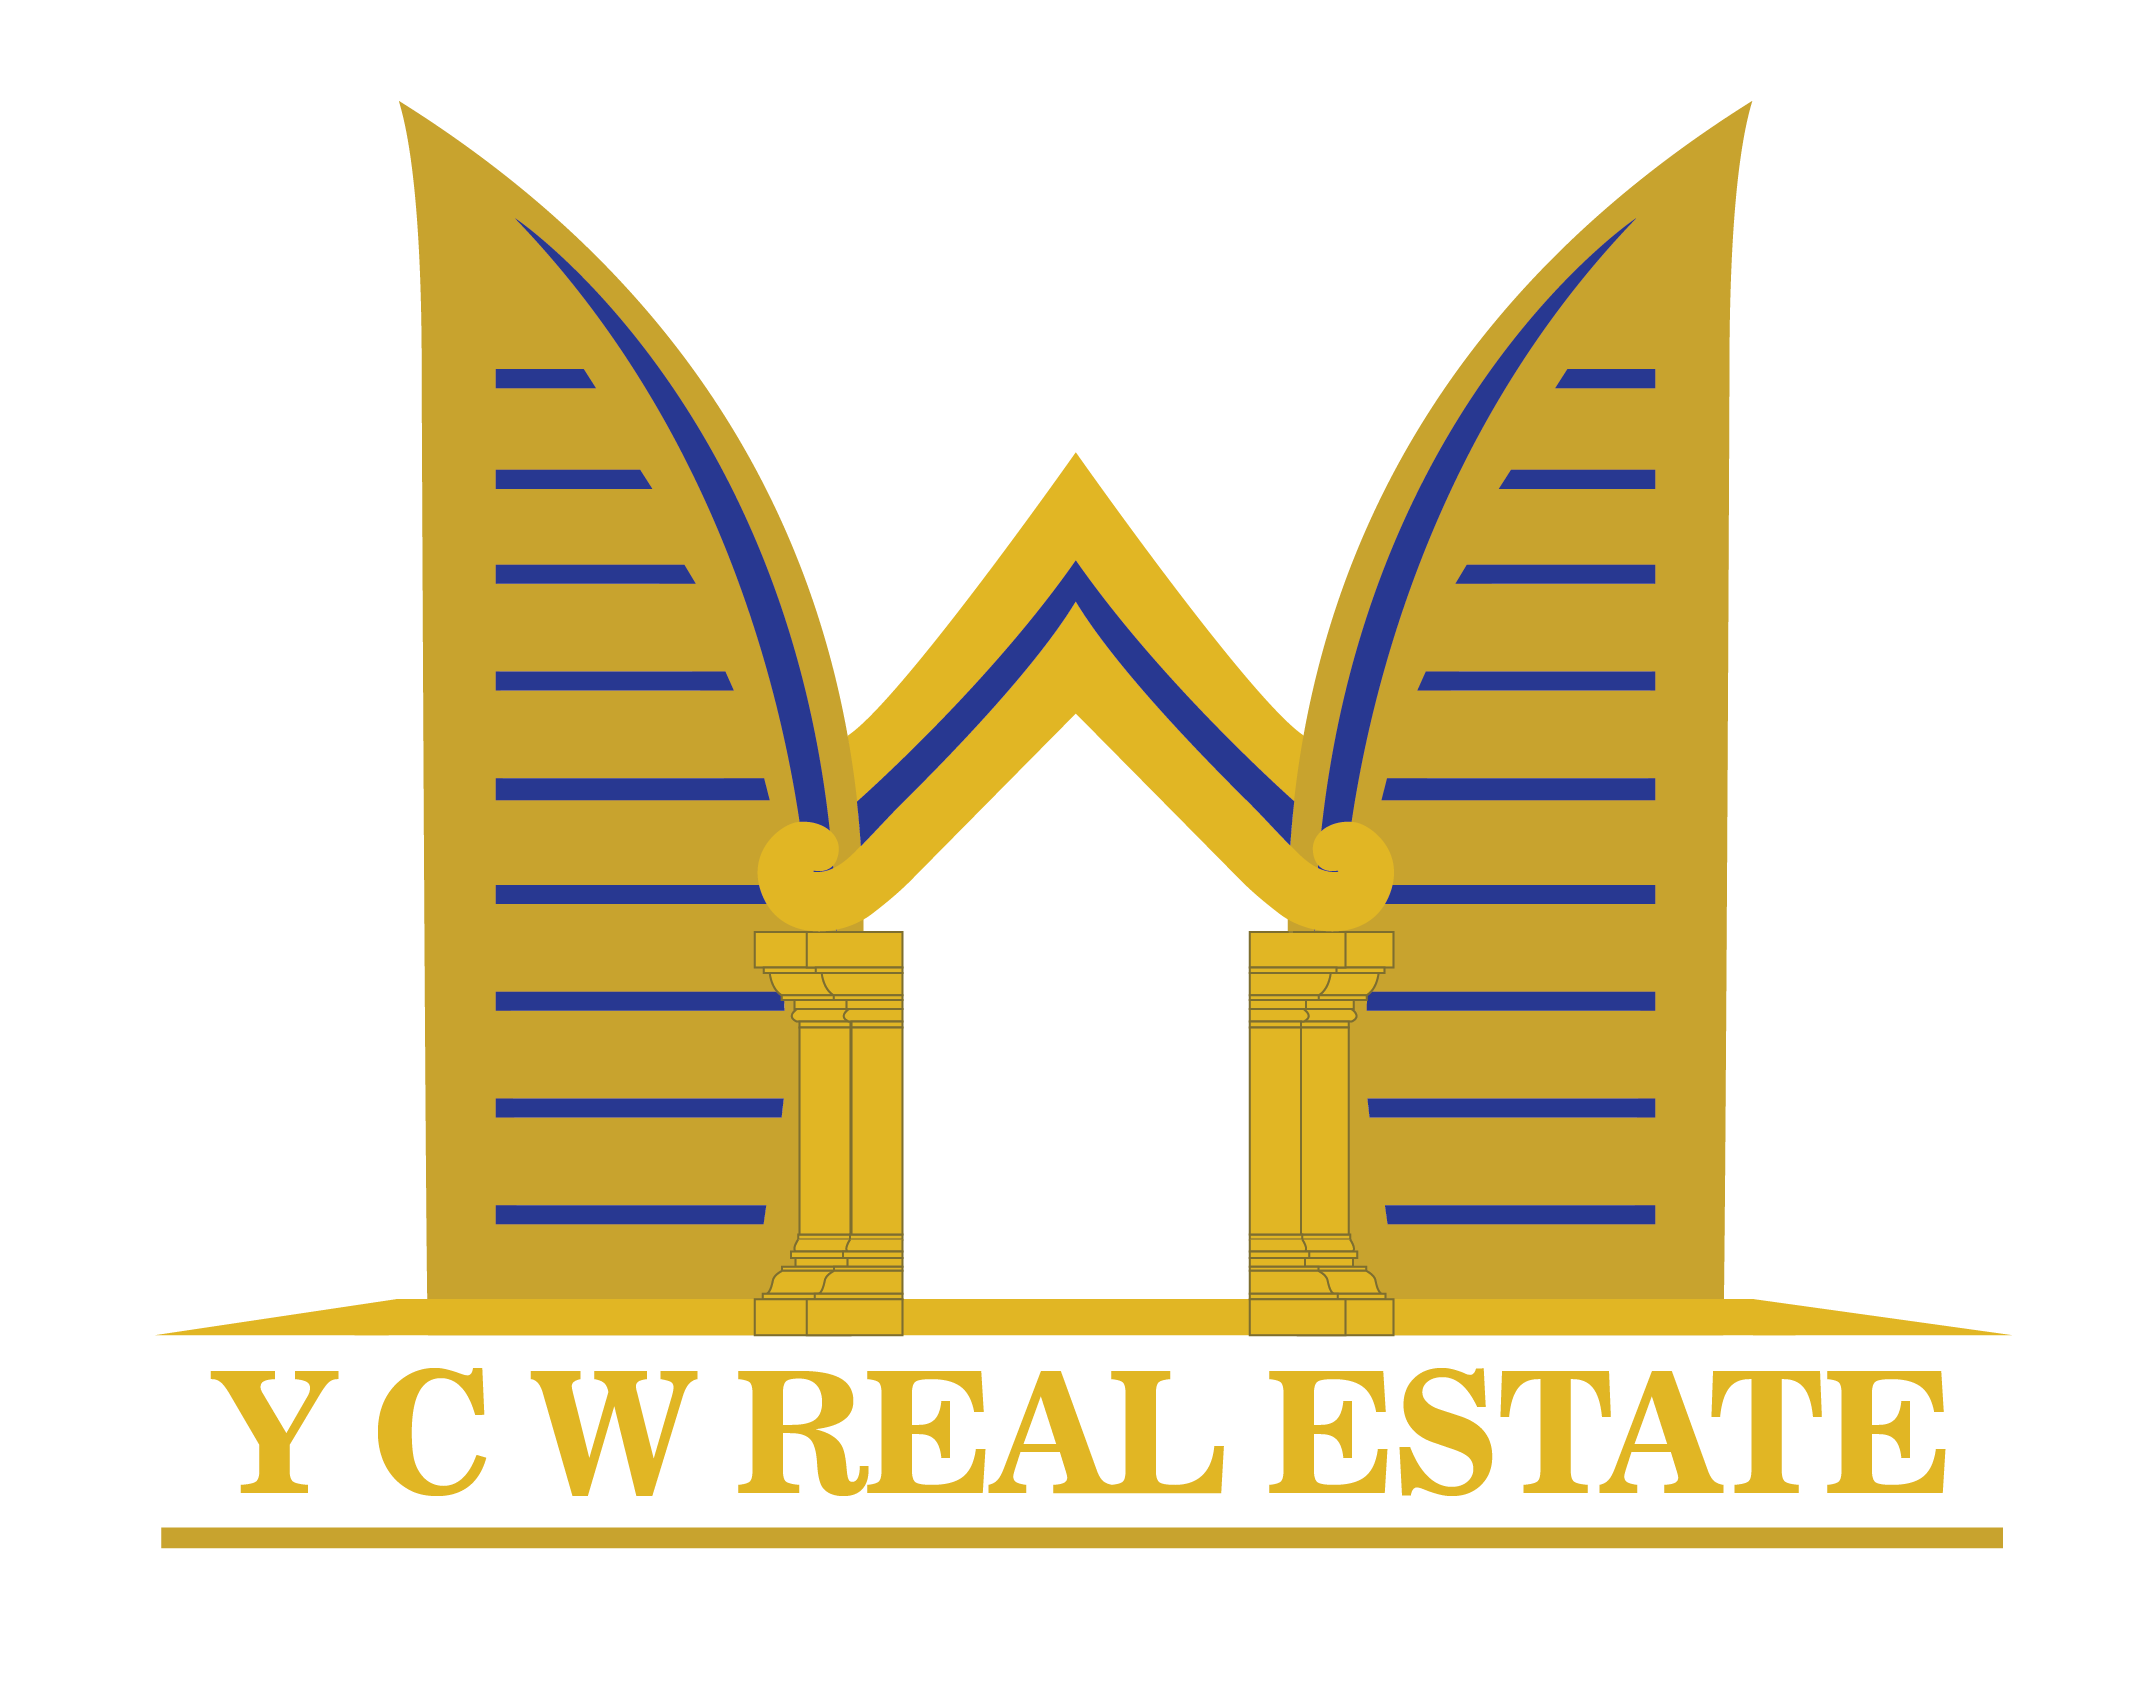 You can win realestate